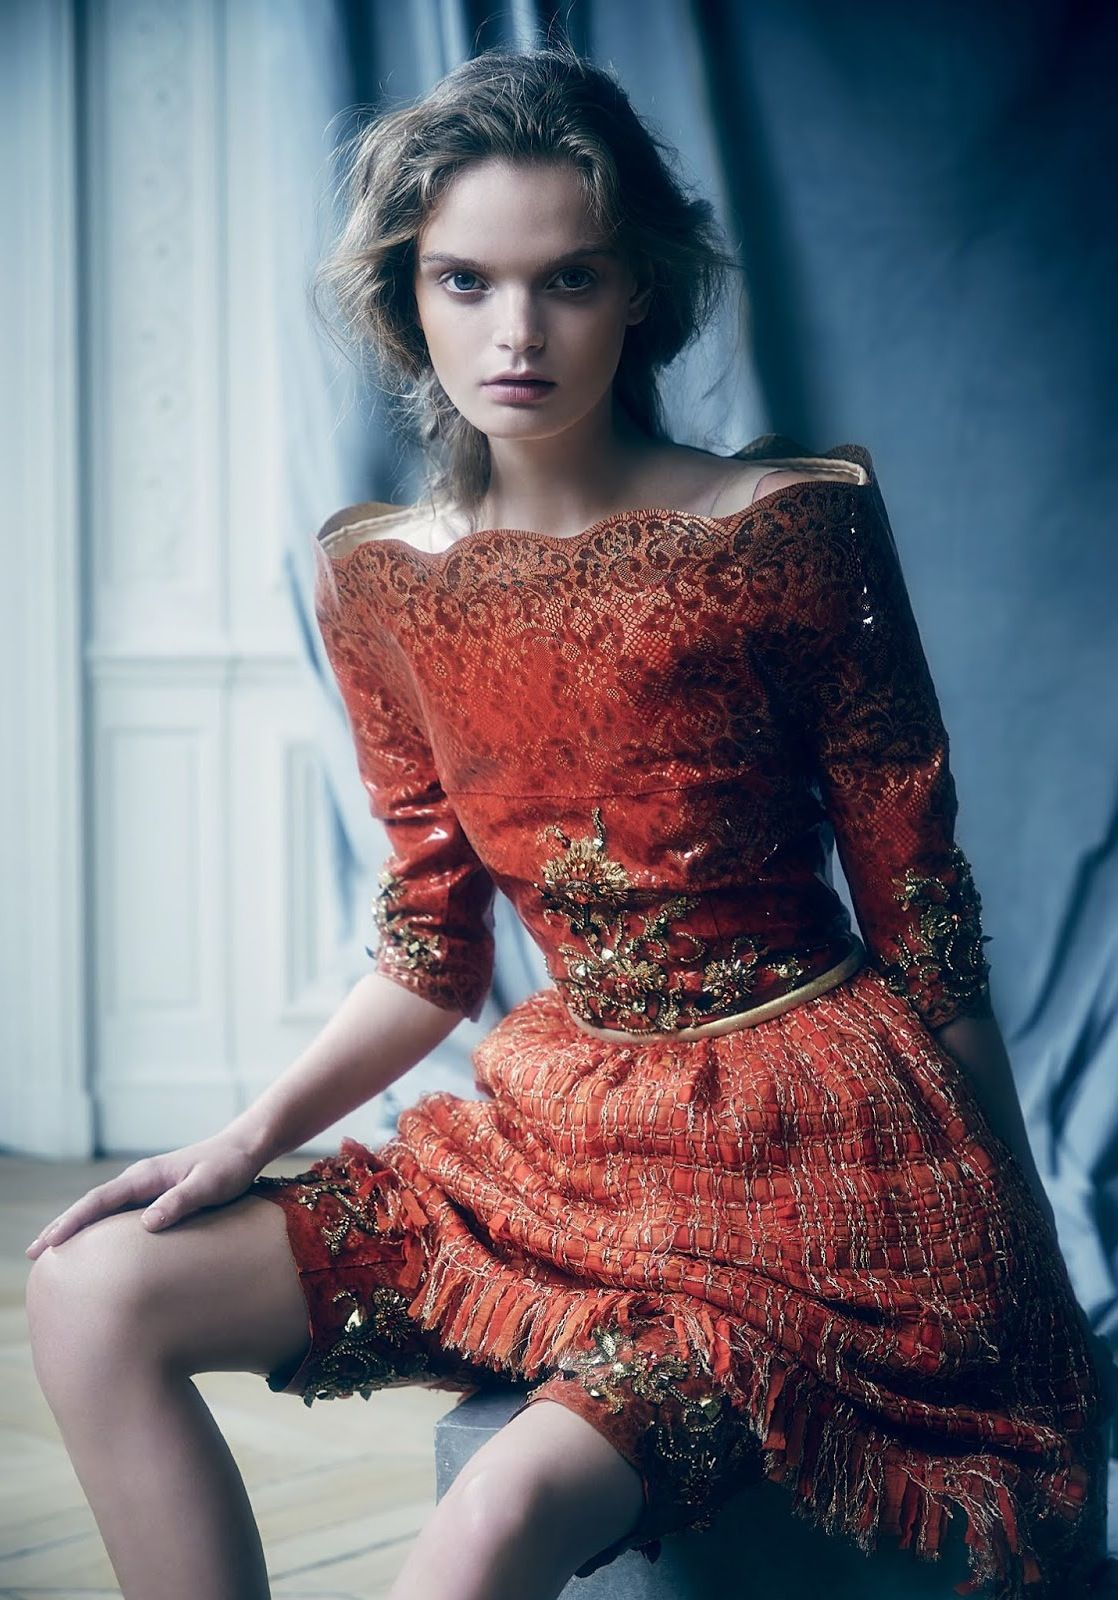 """leahcultice: """" Marthe Wiggers by Nicole Bentley for Vogue Australia November 2014 """""""